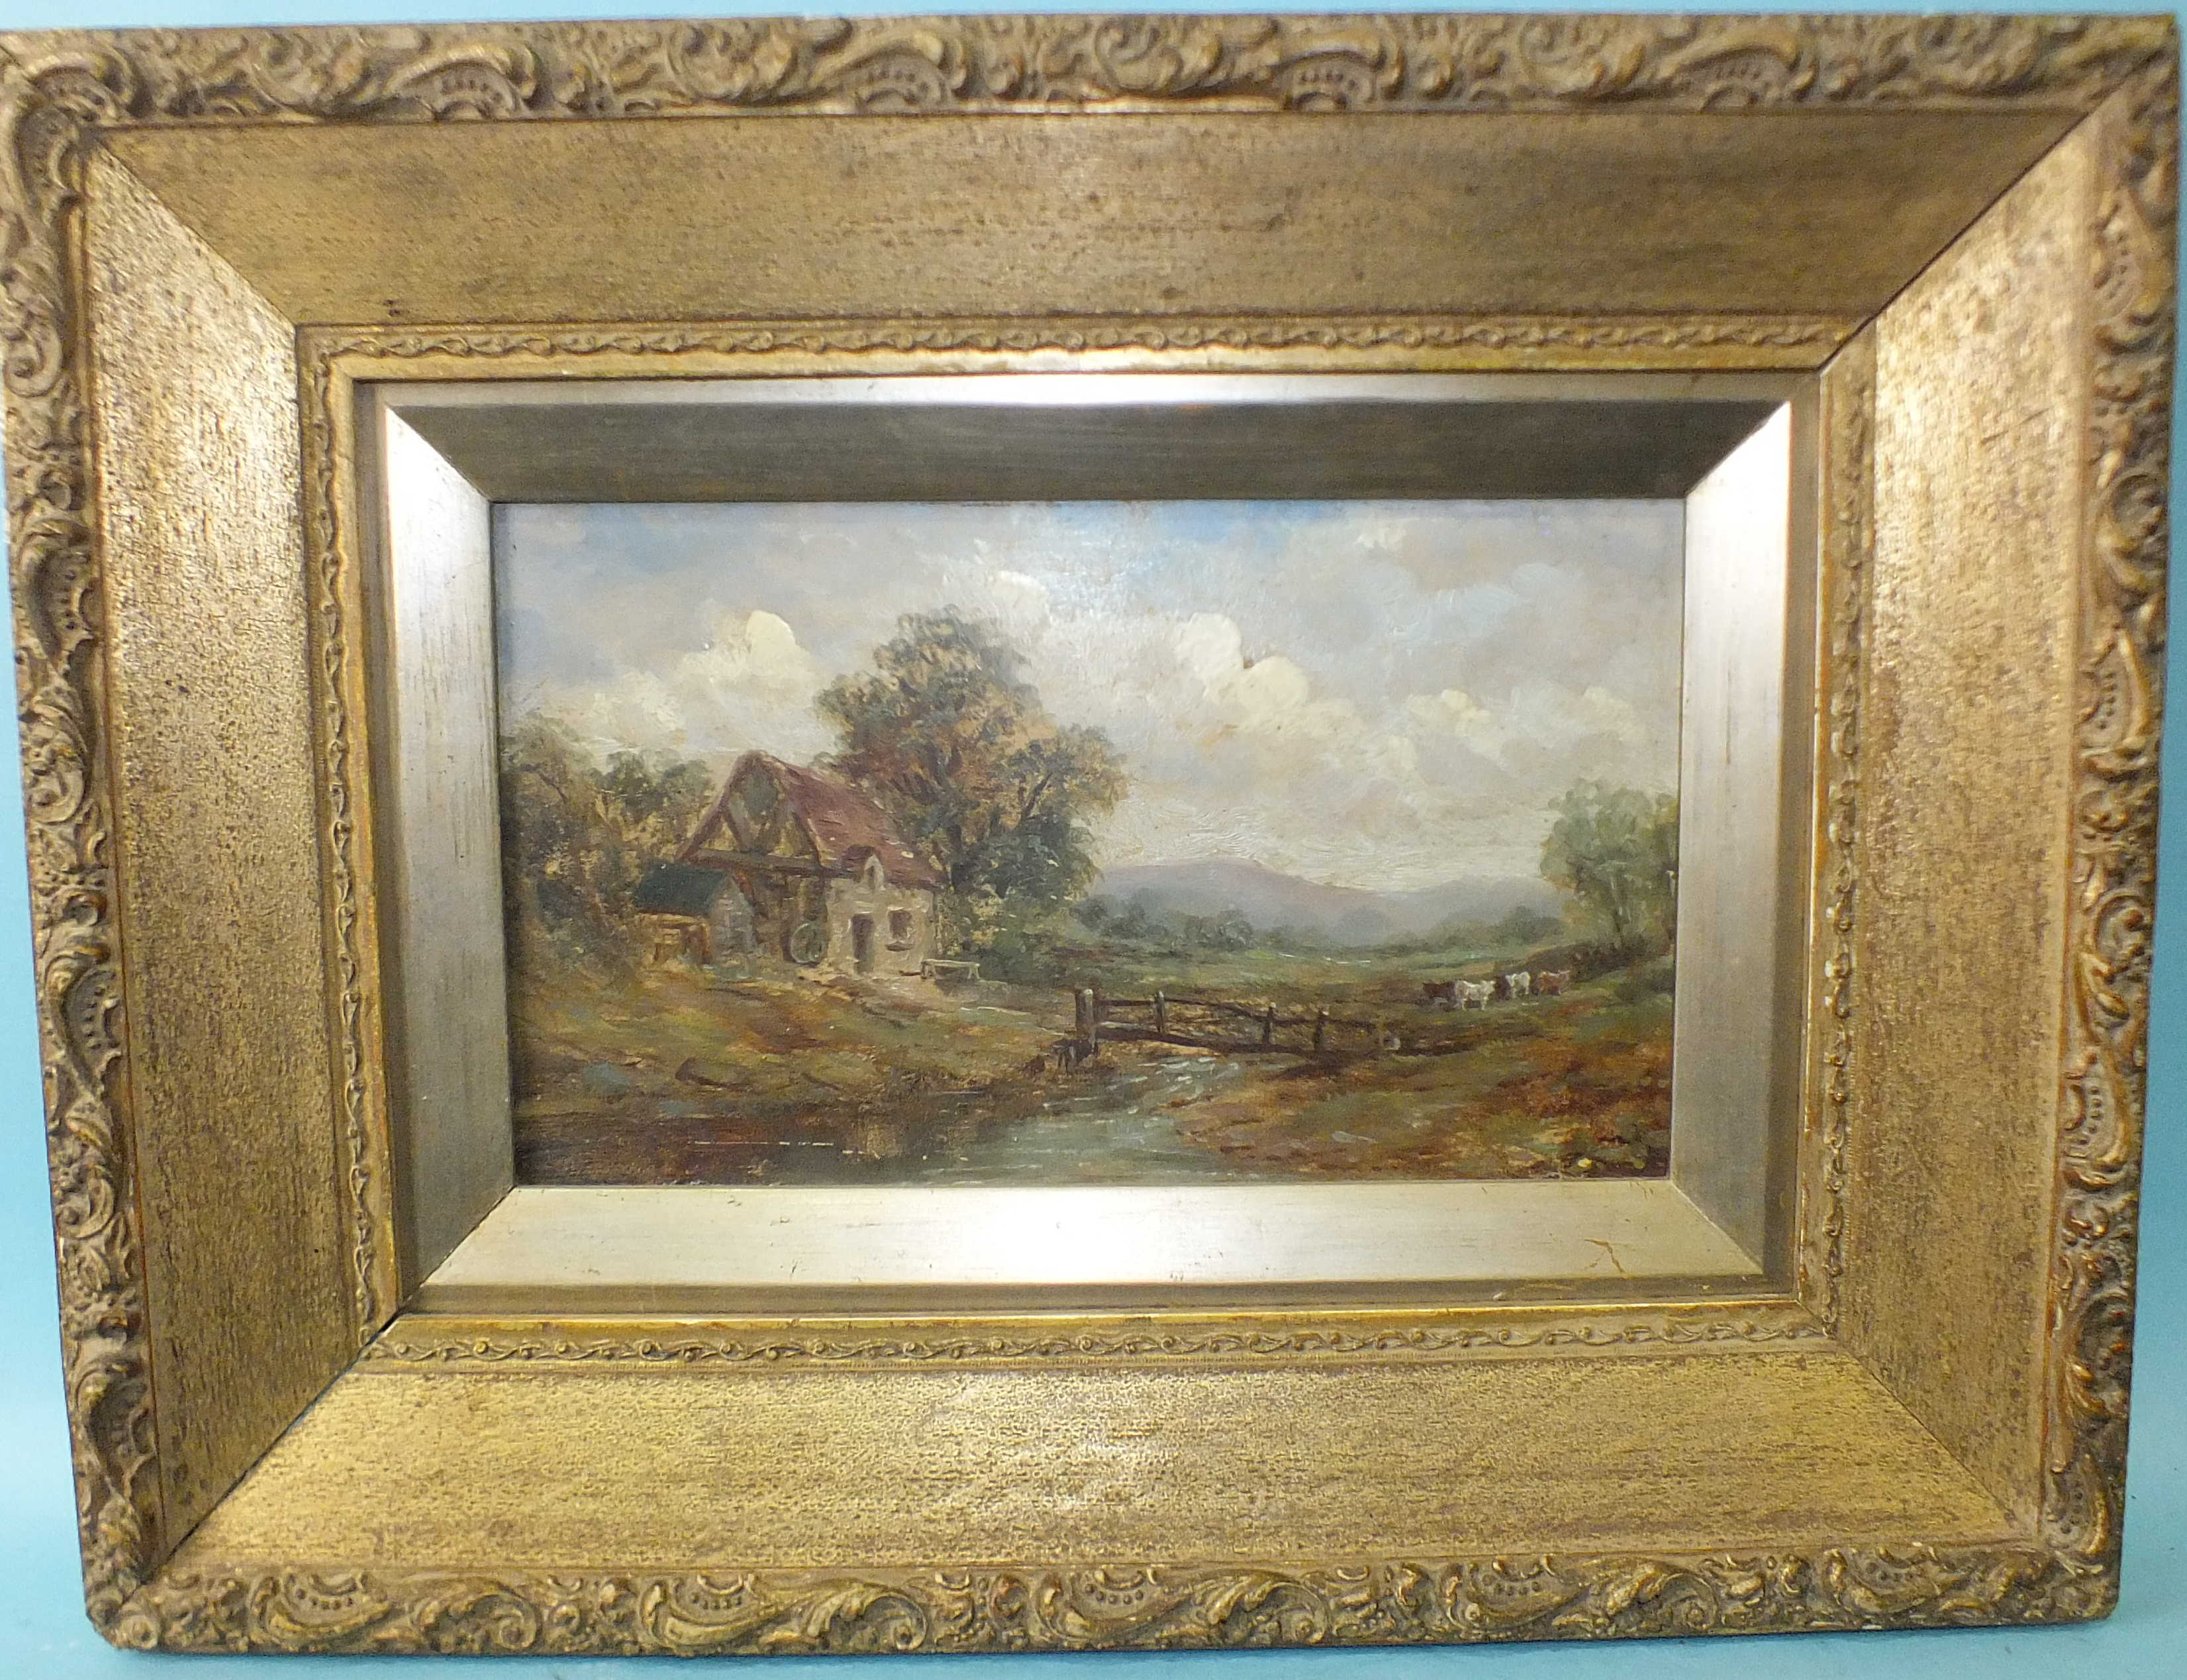 19th century English School CATTLE AND COTTAGE IN PASTORAL LANDSCAPE Unsigned oil on board, 15.5 x